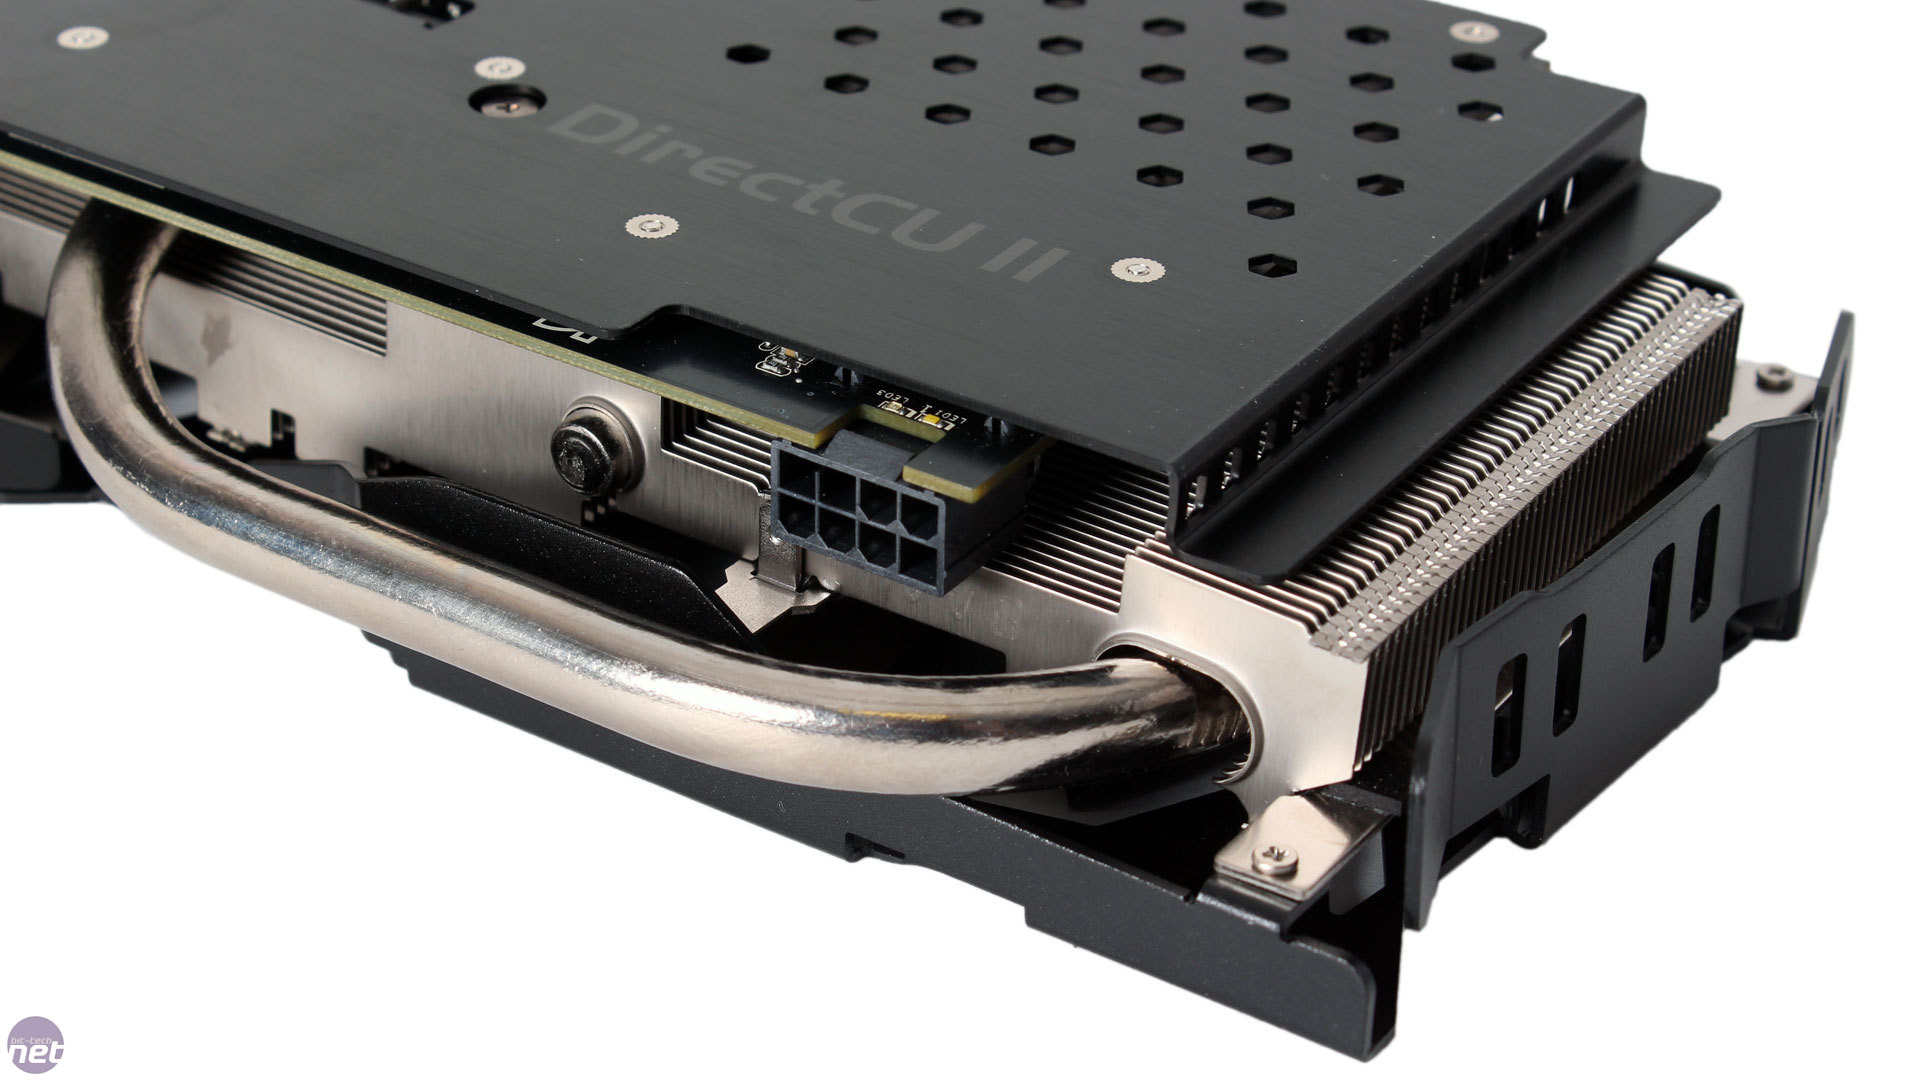 Content images 2014 09 nvidia geforce gtx 970 review asus970 4b jpg